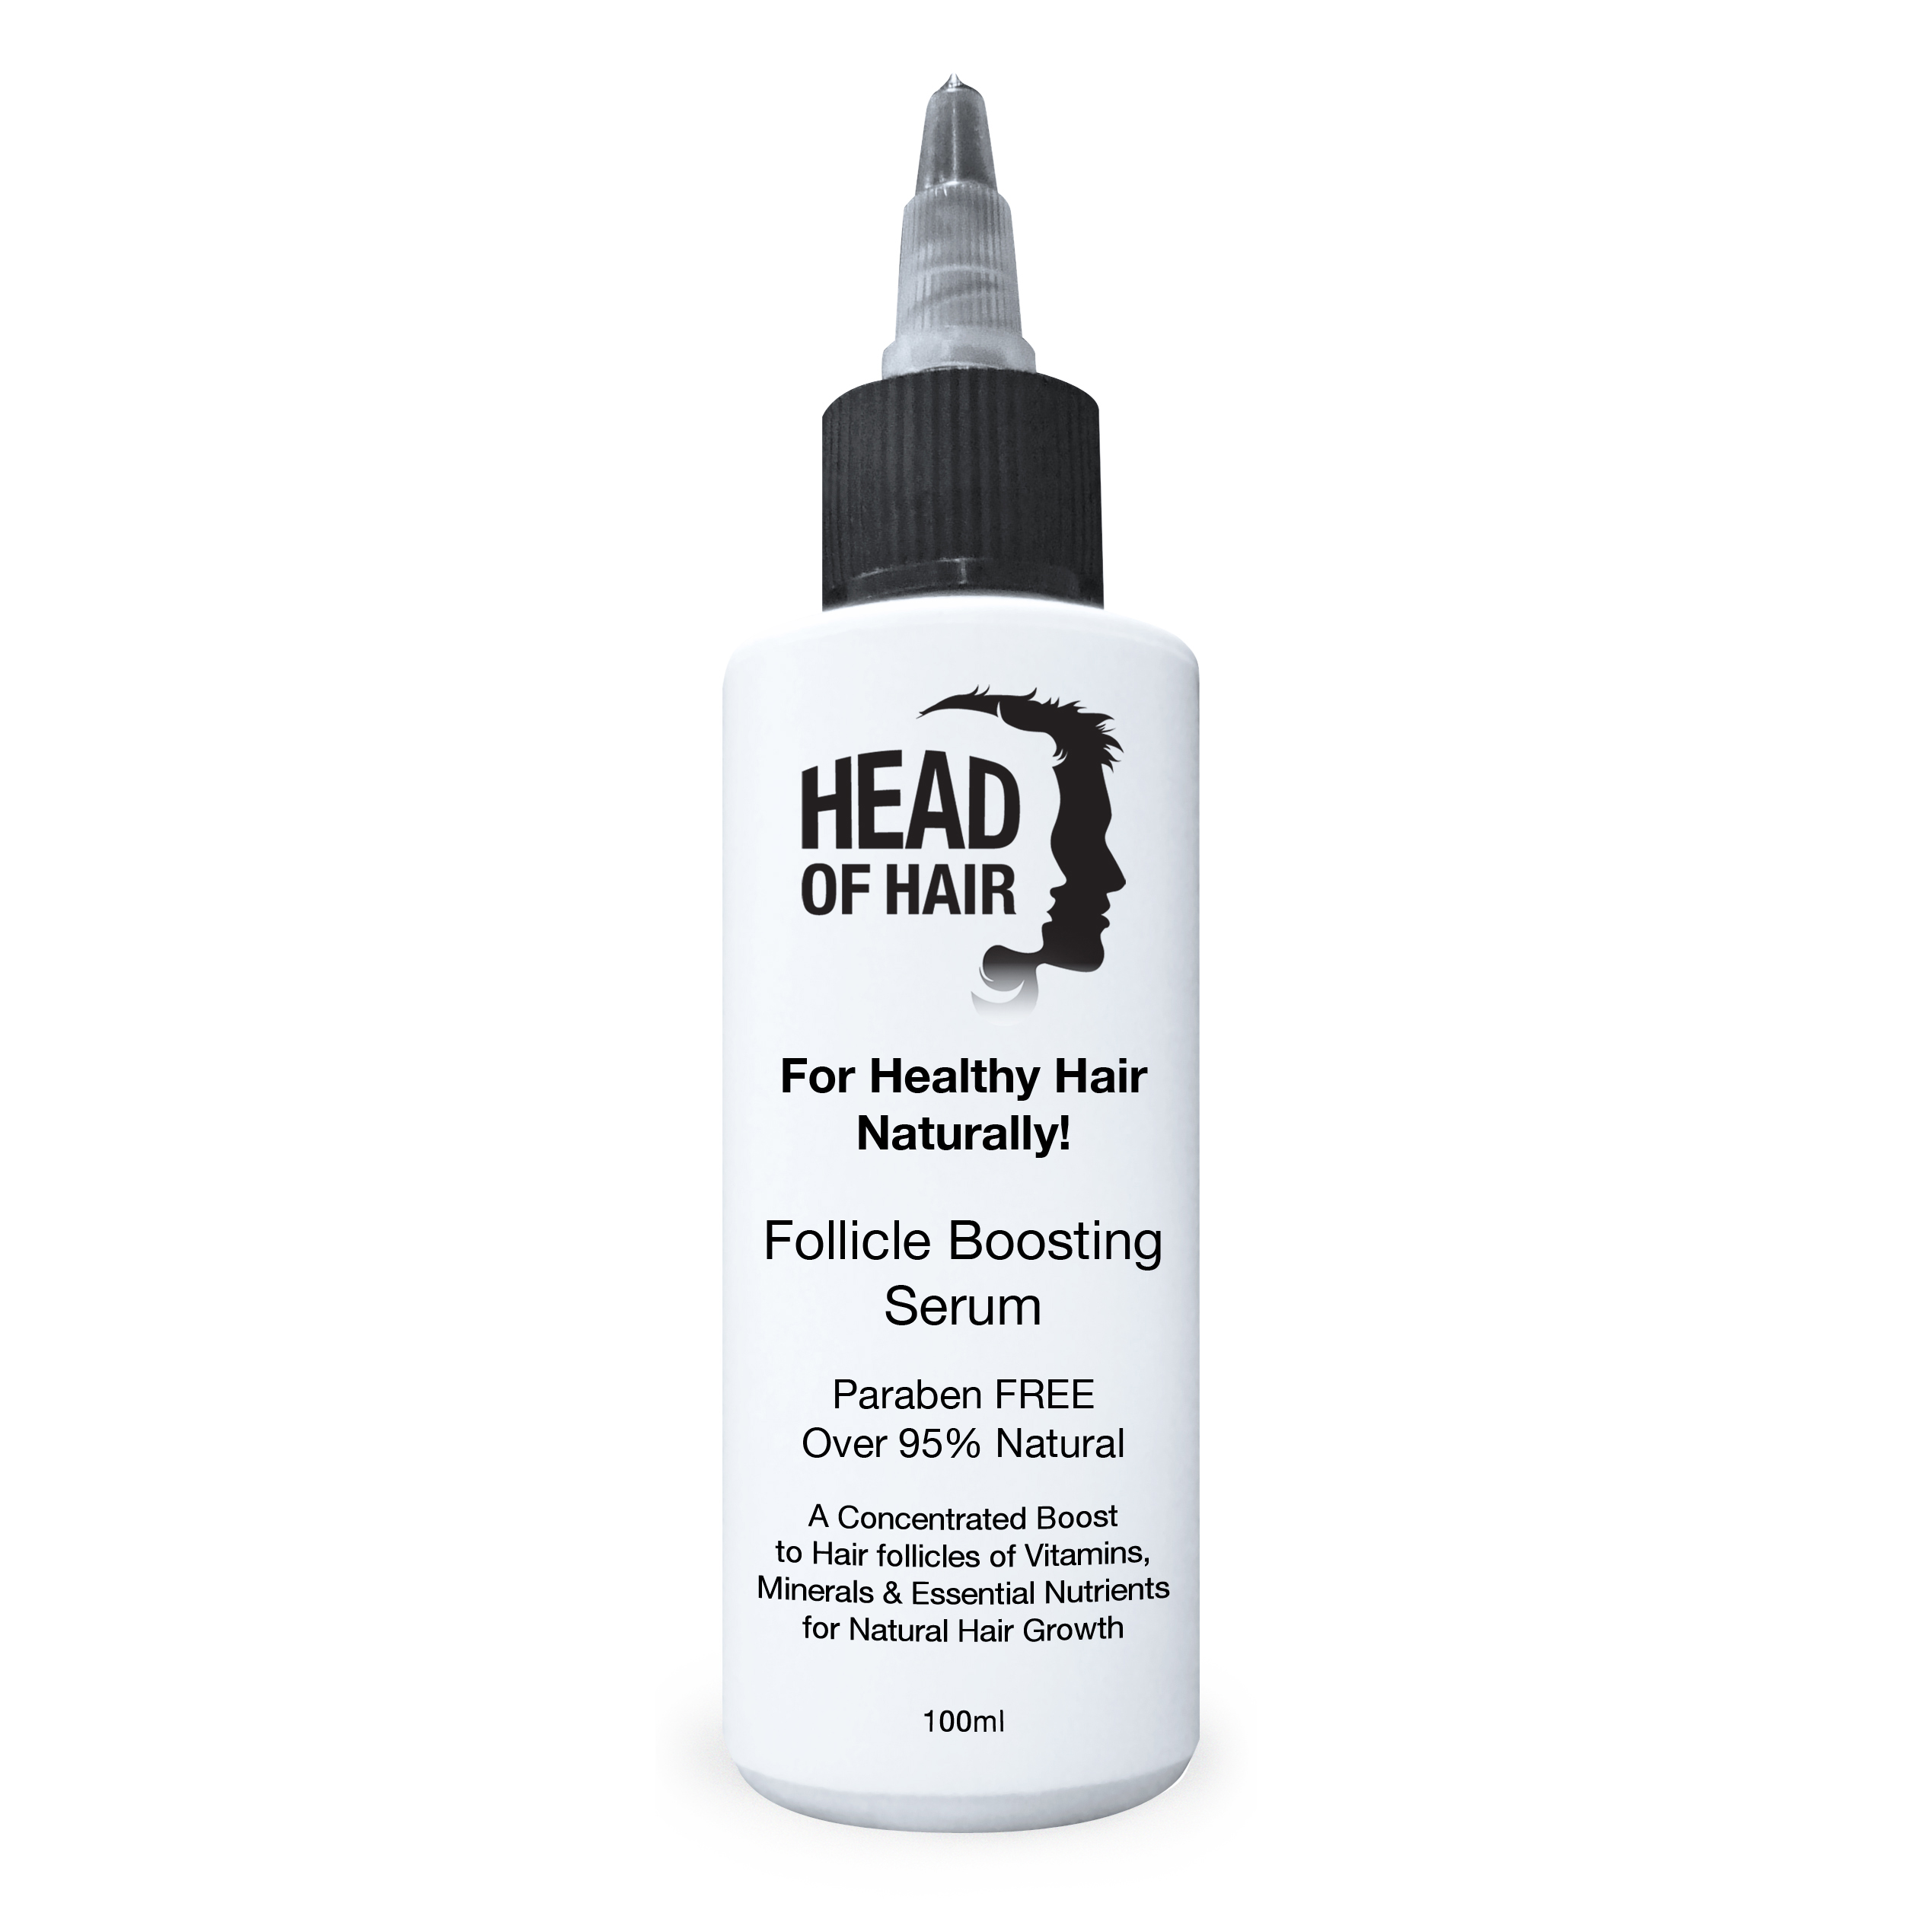 Follicle Boosting Serum